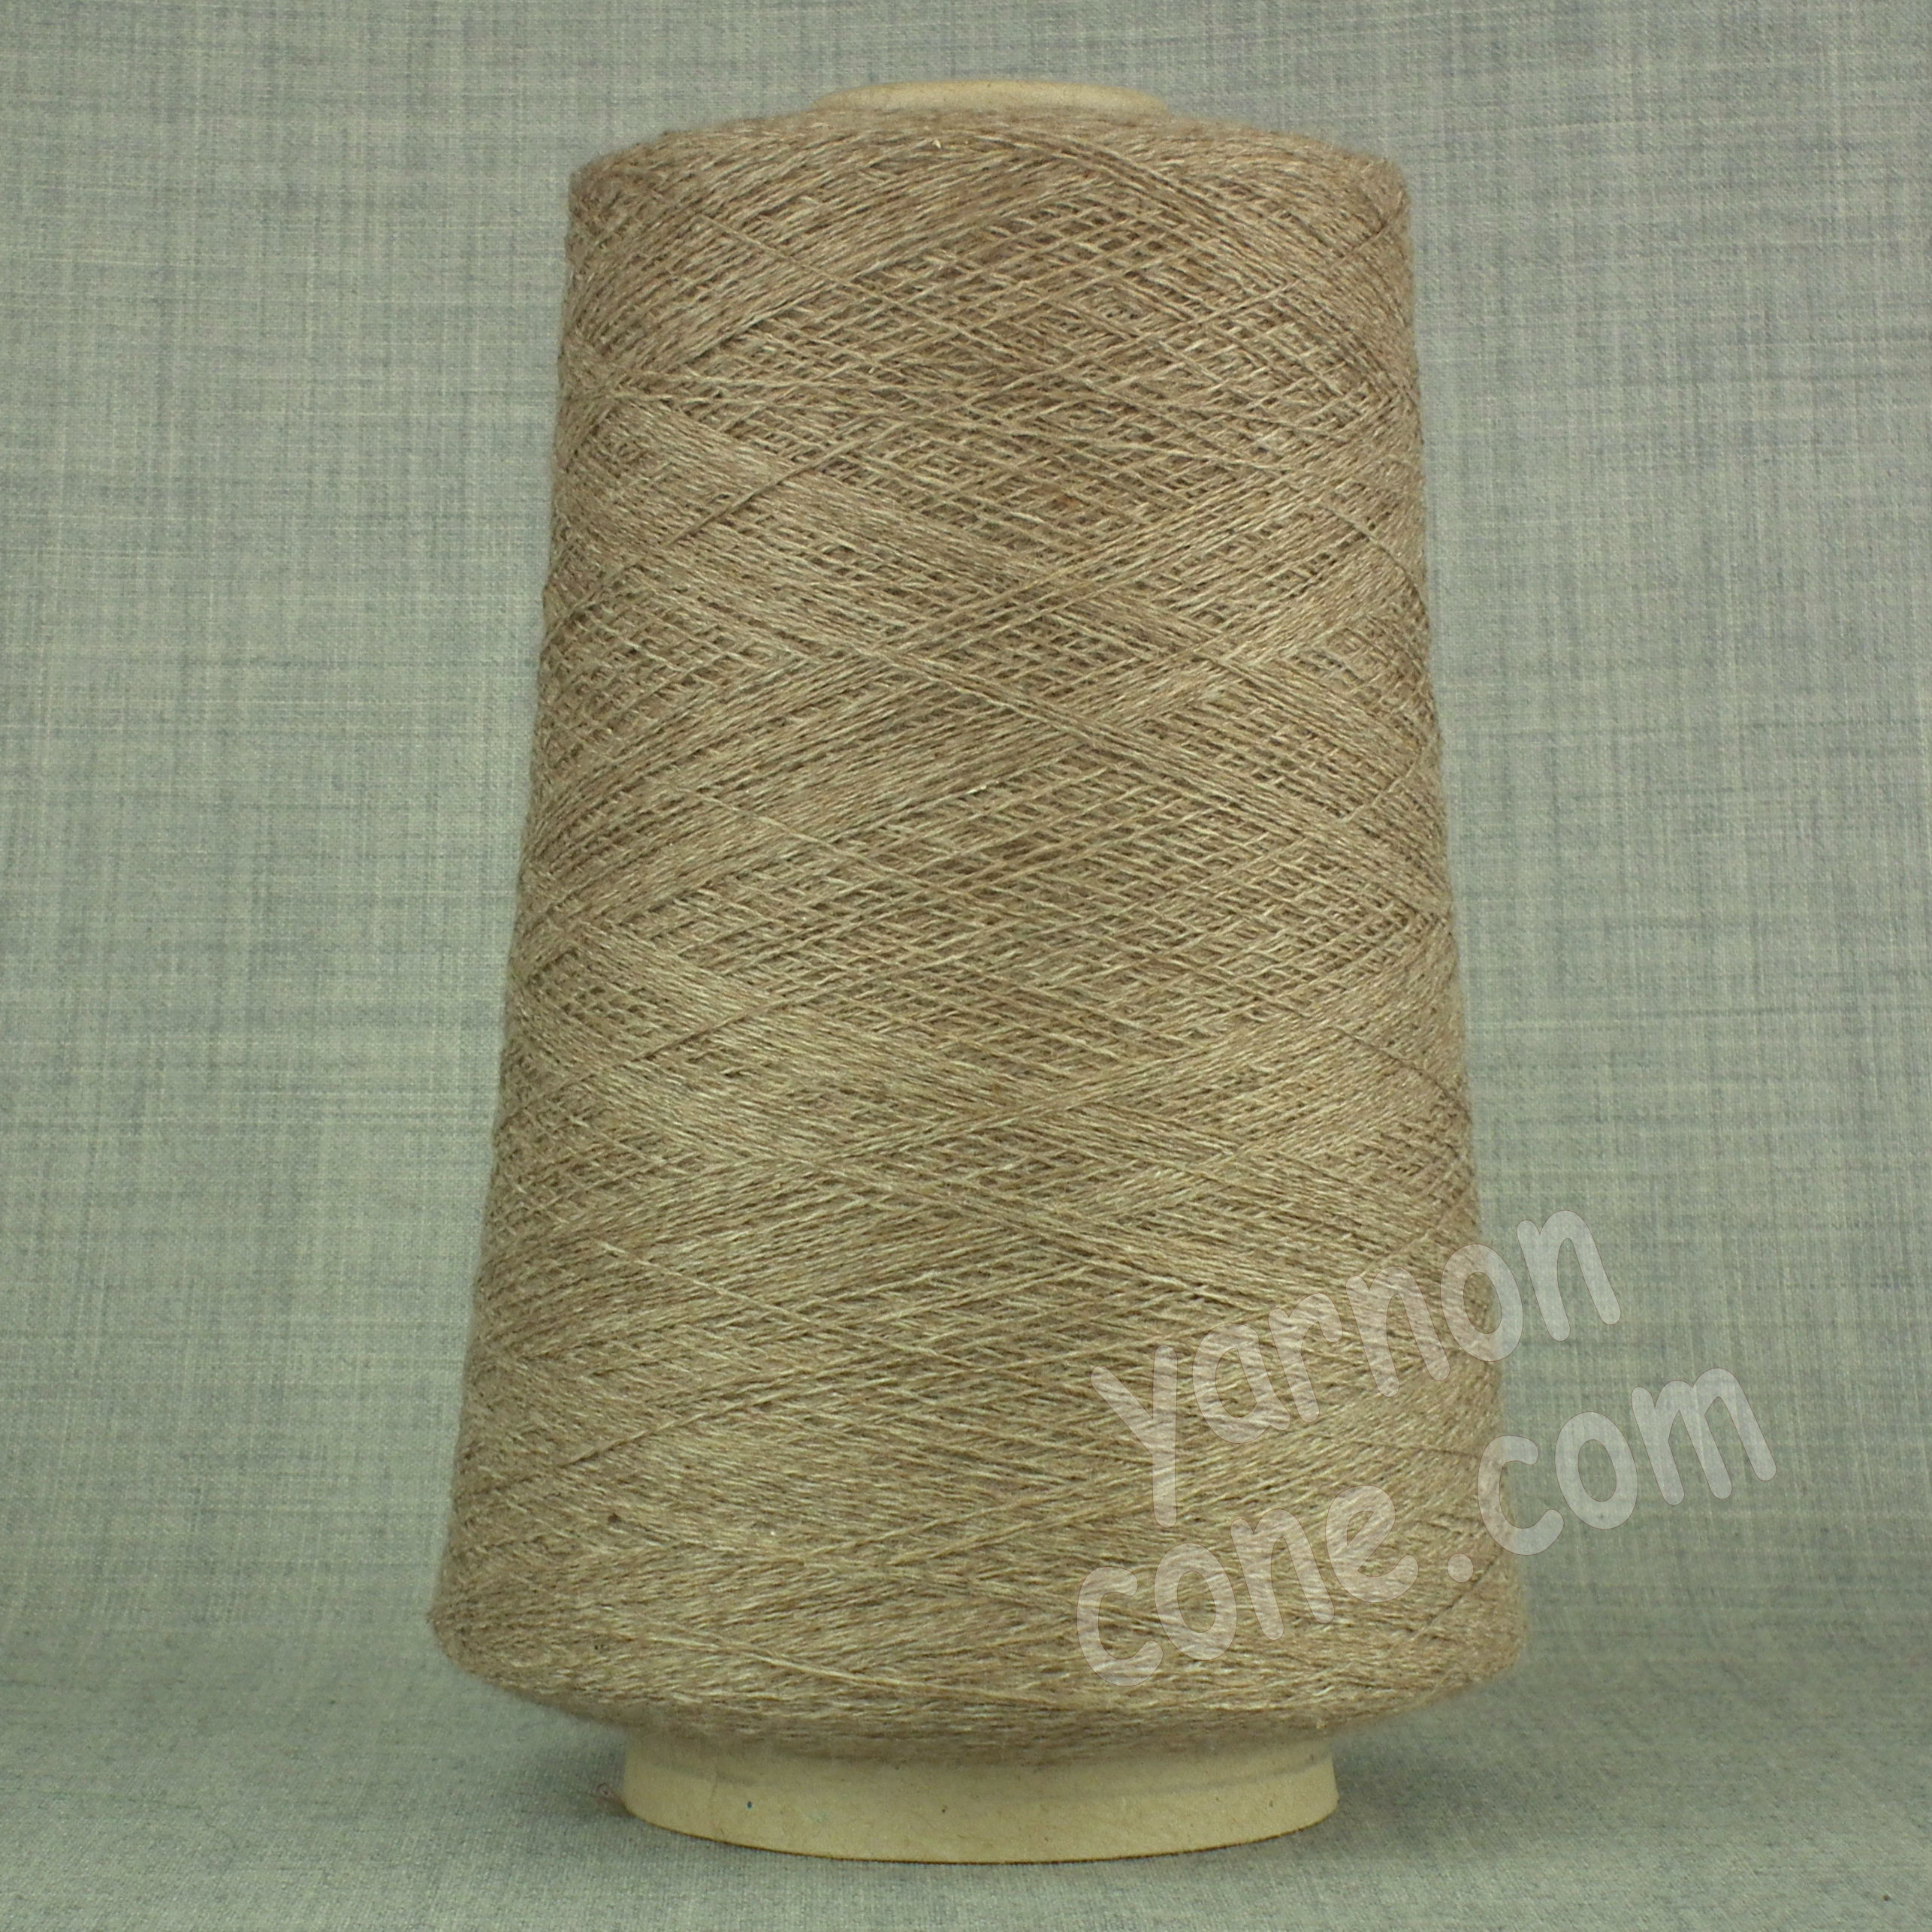 cashmere cotton todd duncan odyssey cone uk knitting soft oatmeal brown